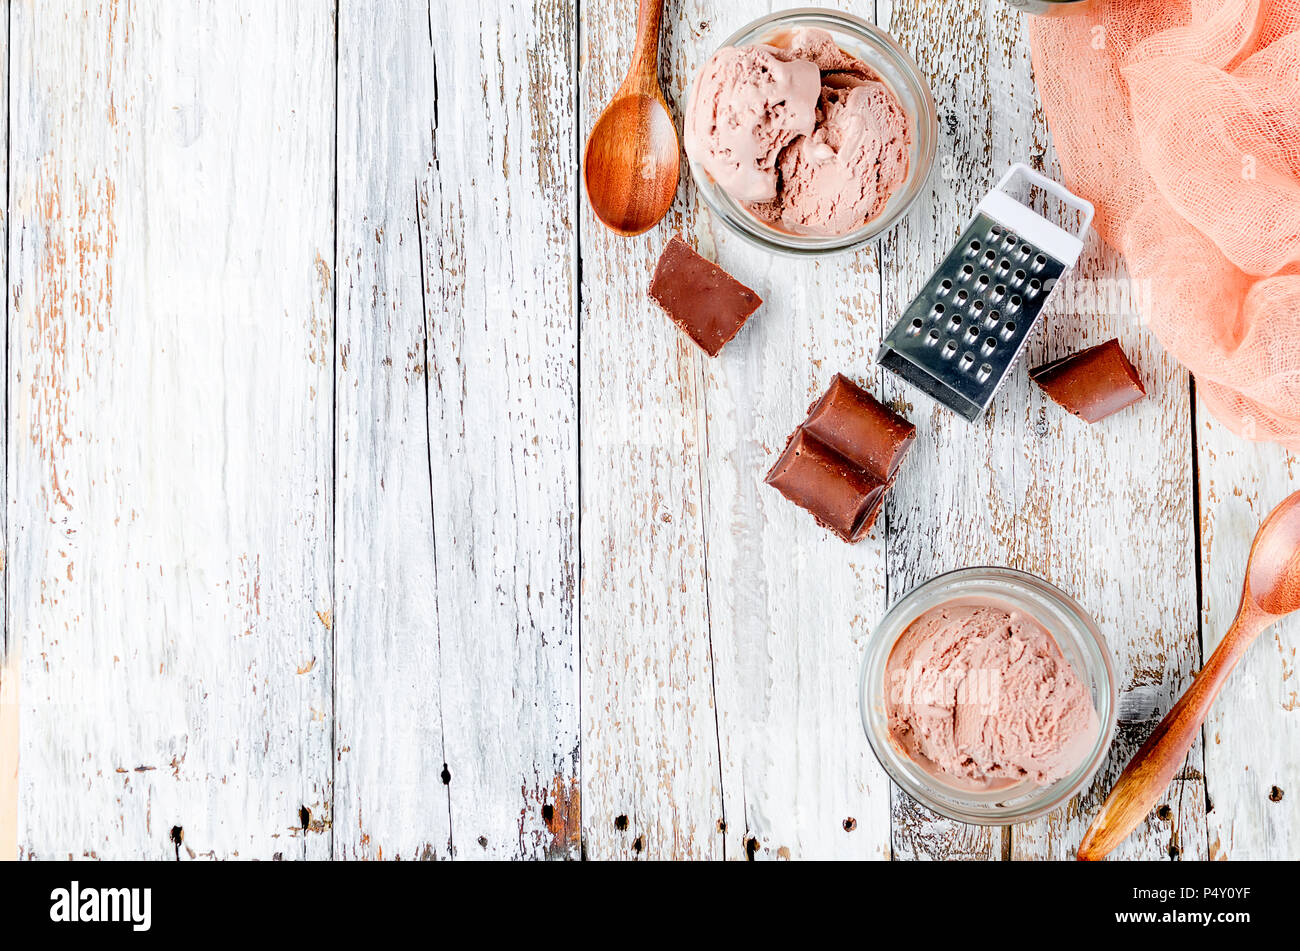 chocolate ice cream ball in a bowl on a white rustic table. Copy space. - Stock Image